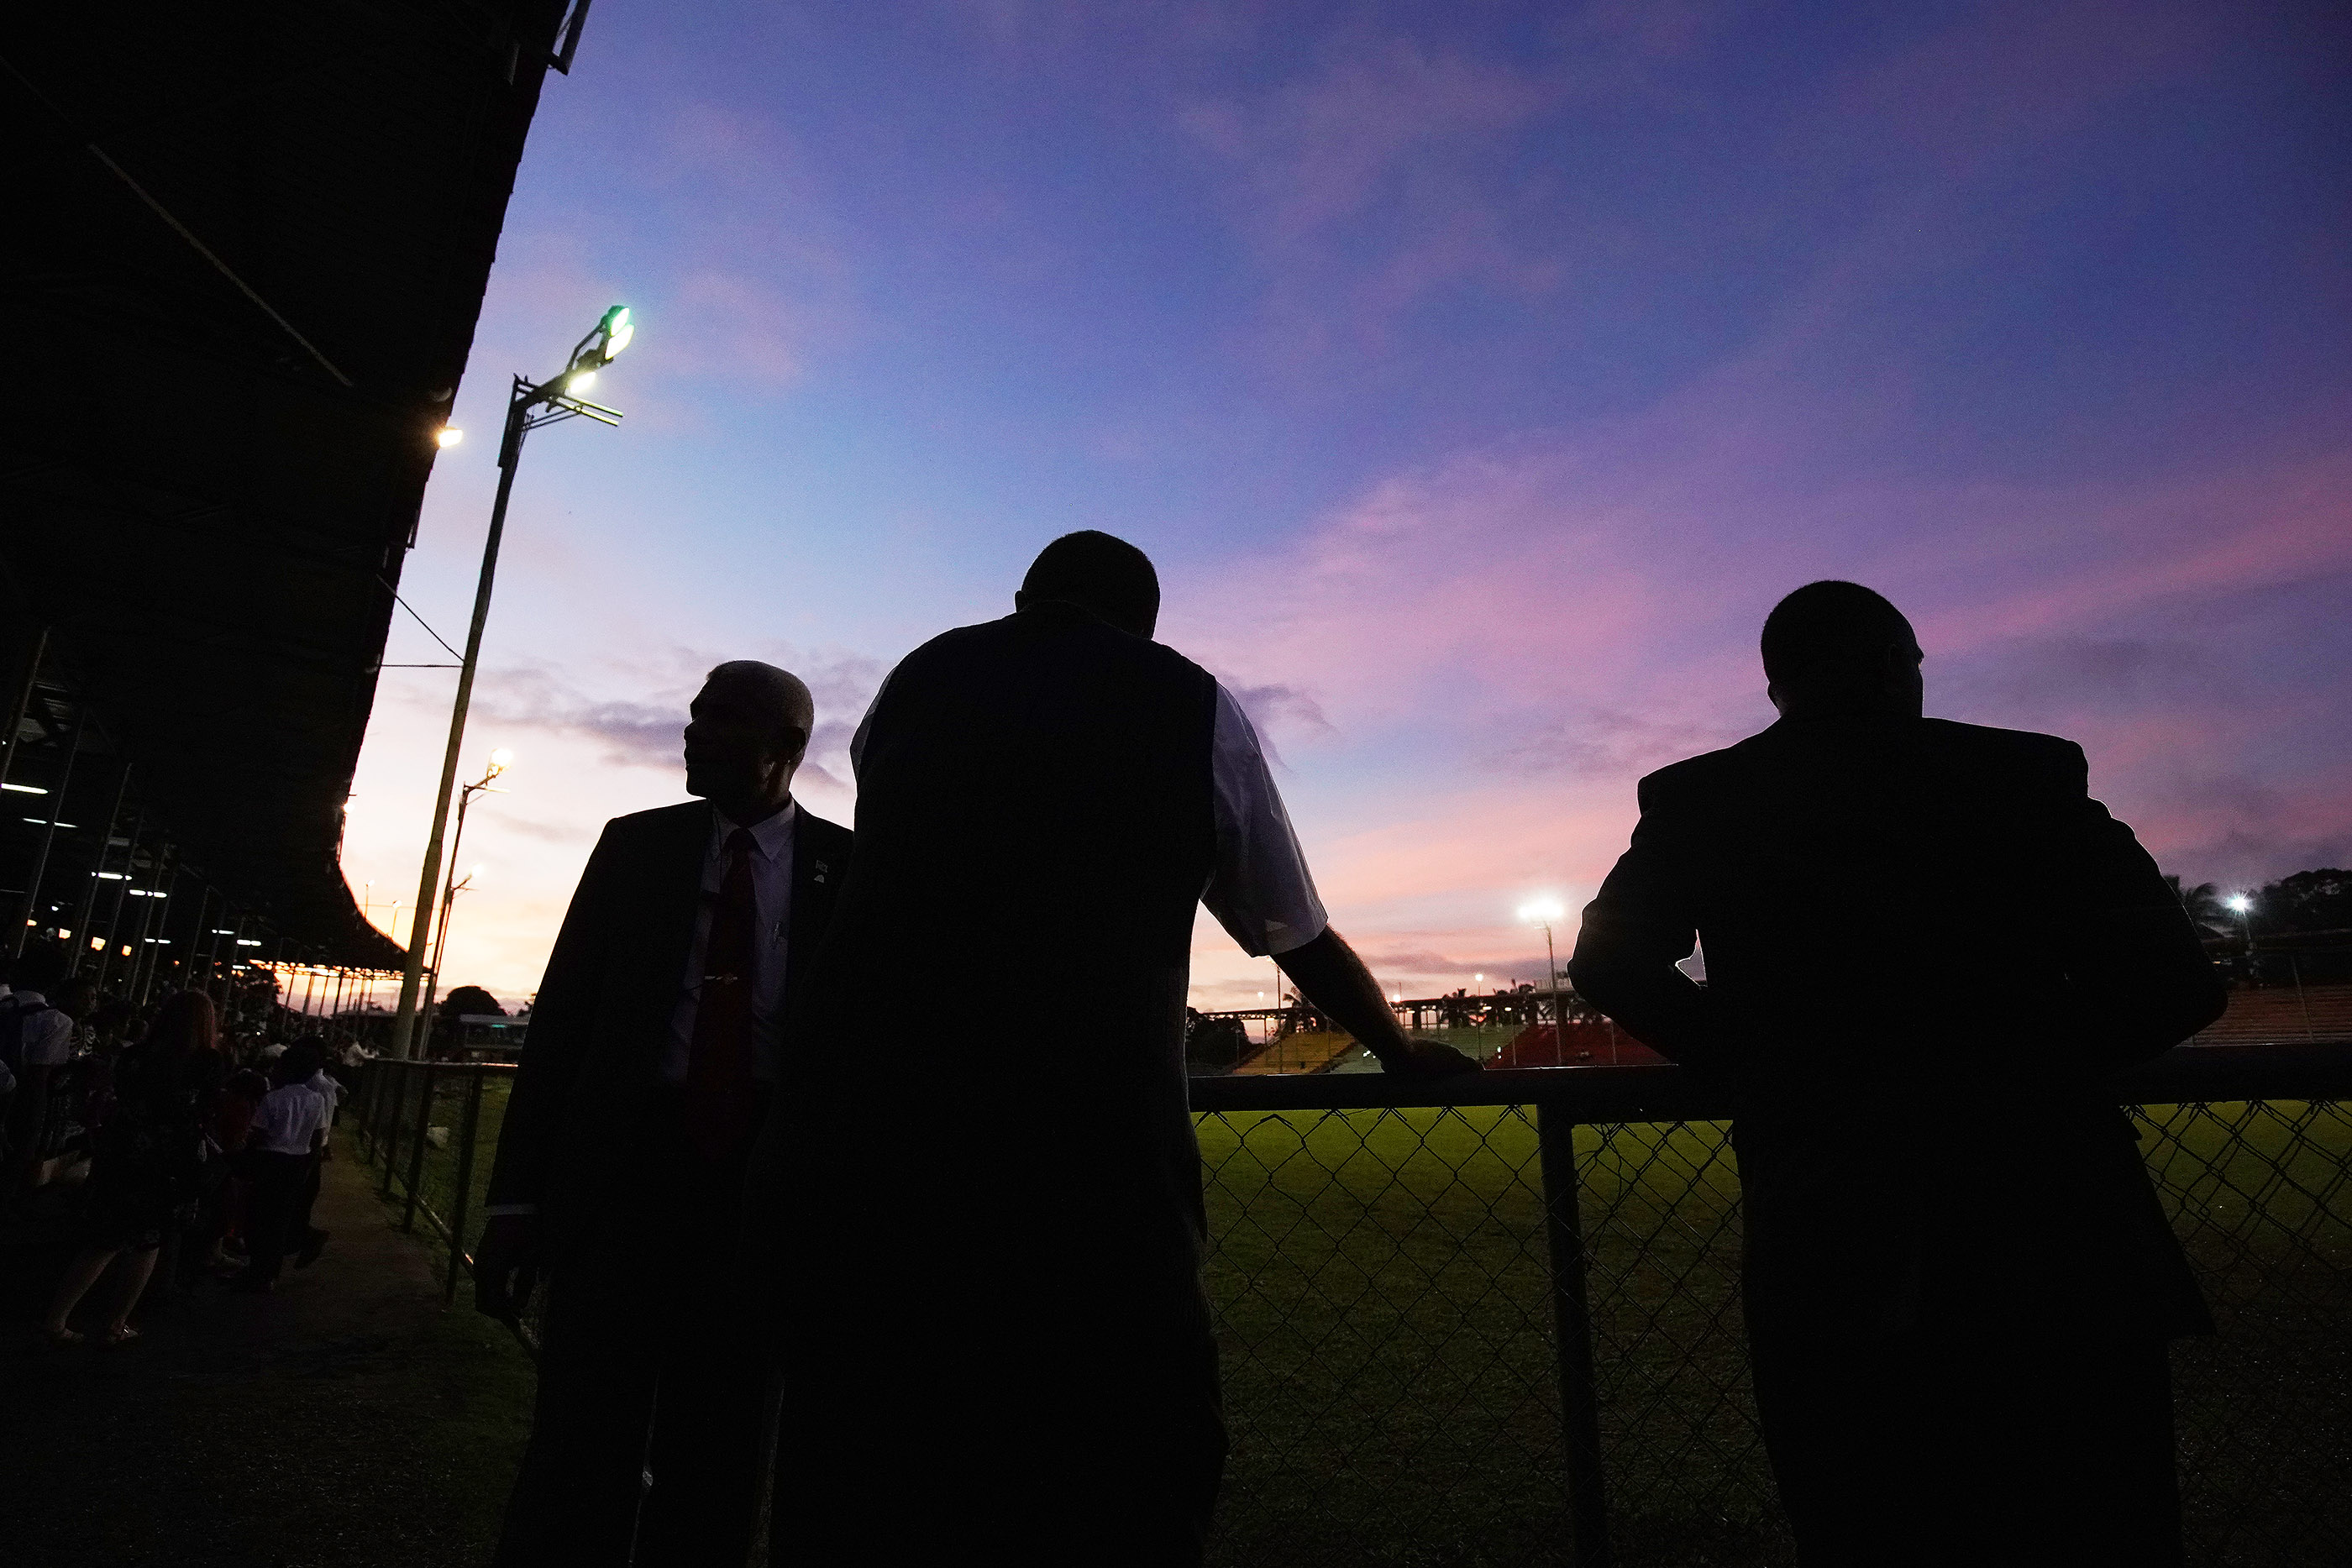 Attendees listen as the sun sets during a devotional at Ratu Cakobau stadium in Nausori, Fiji on May 22, 2019.